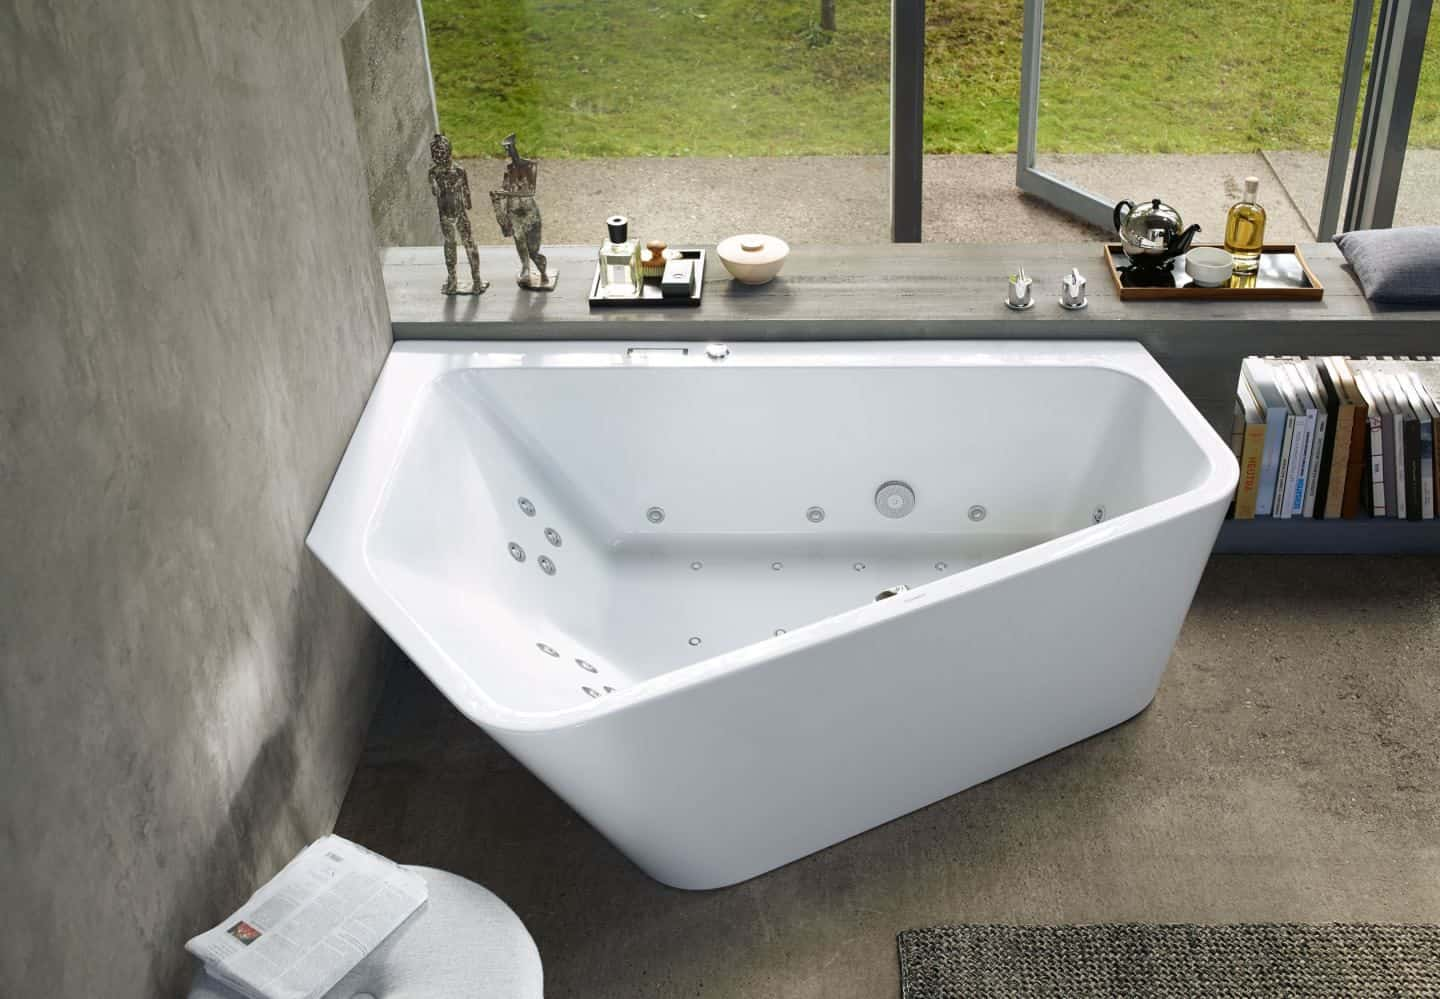 Paiova 5 bathtub from Luxury Bathroom Brand Duravit